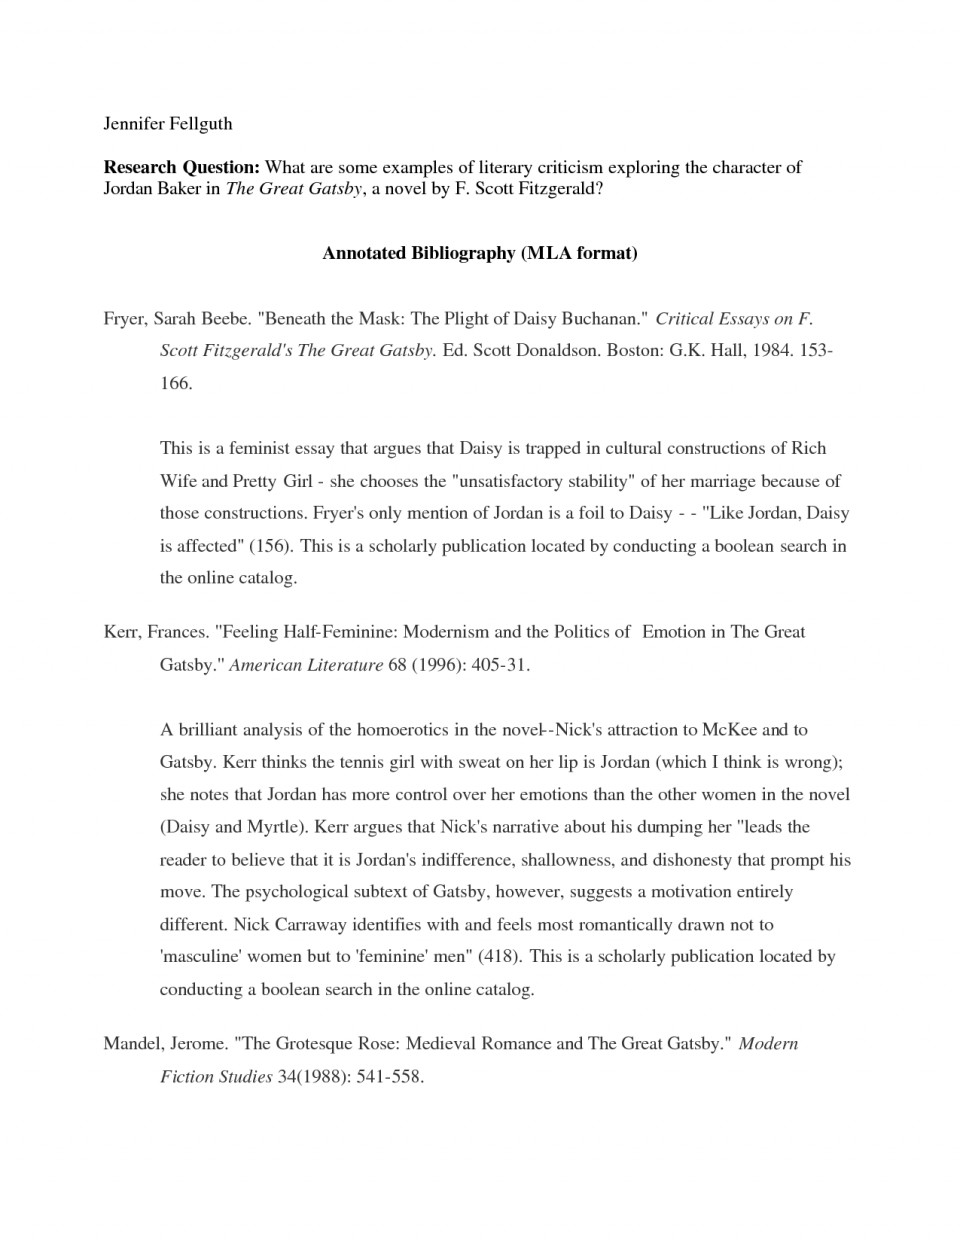 003 Citing Sources College Research Paper Beautiful 960